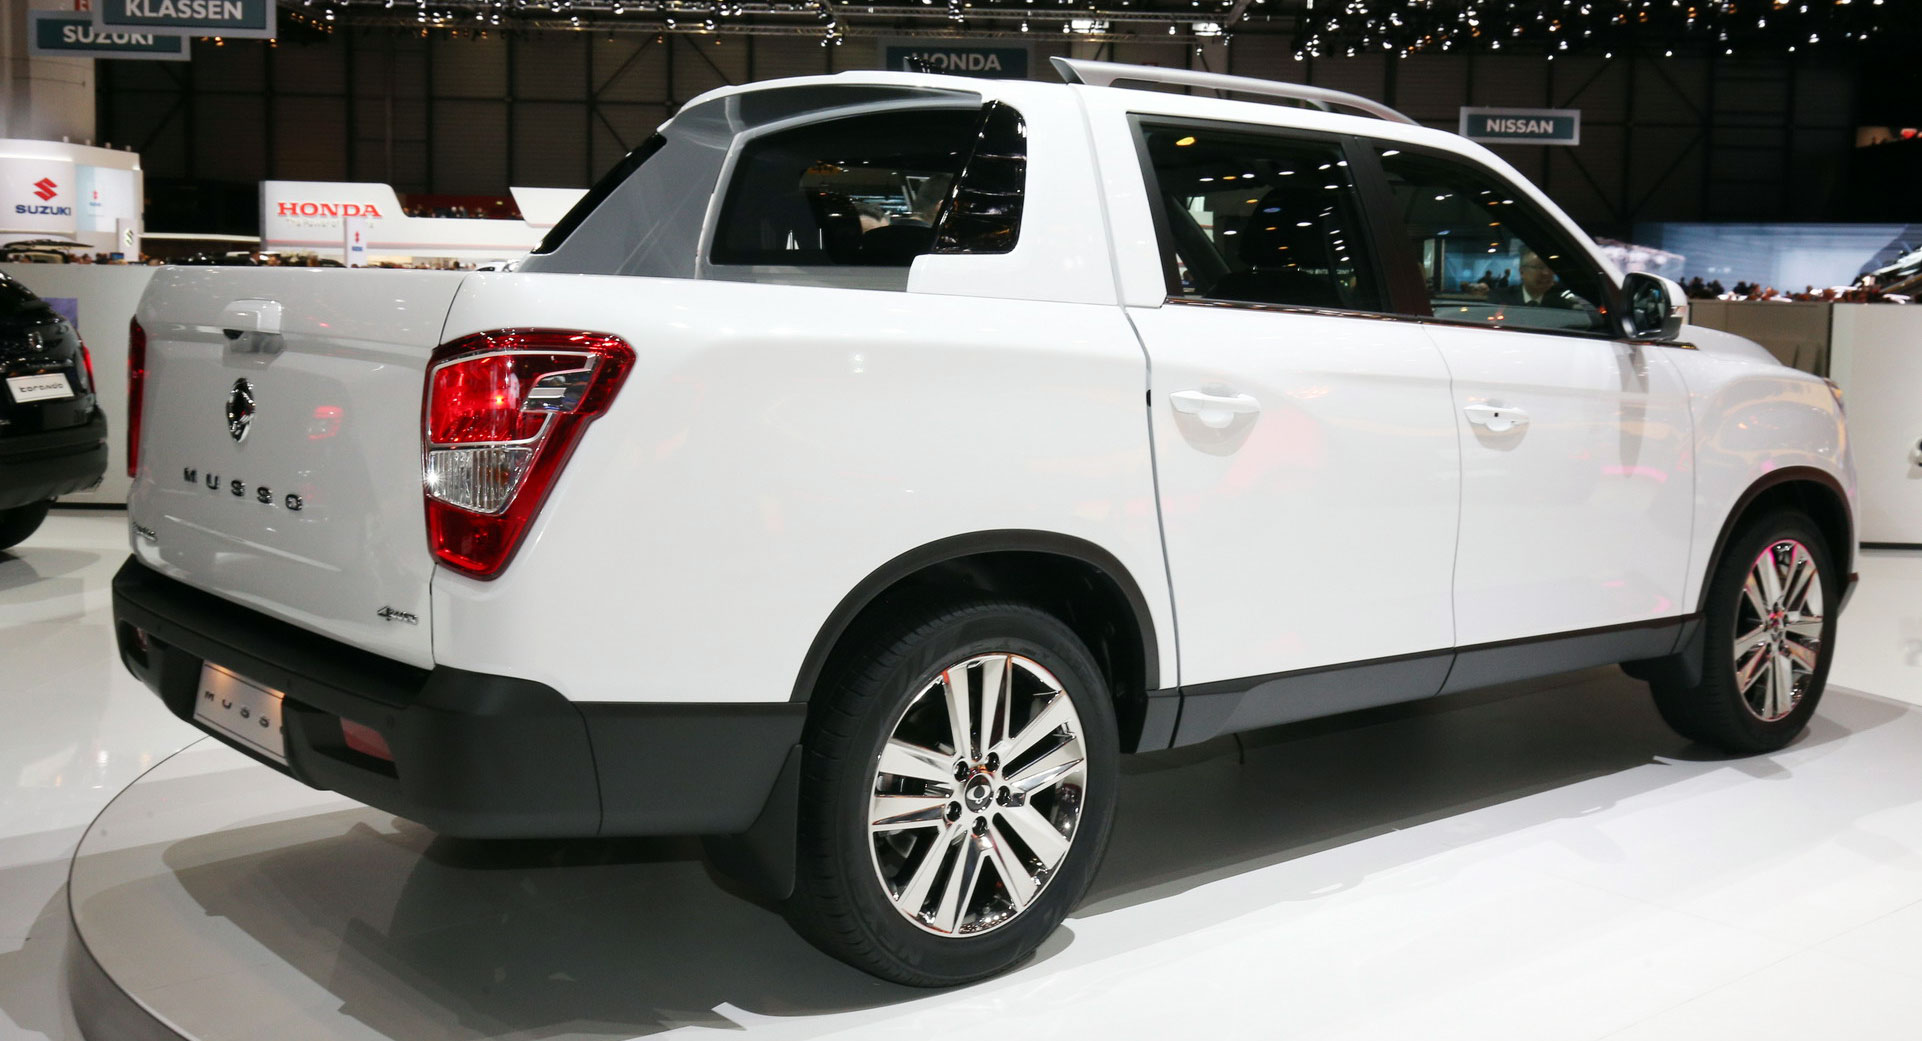 2019 SsangYong Musso Wants To Be Europe's Honda Ridgeline | Carscoops